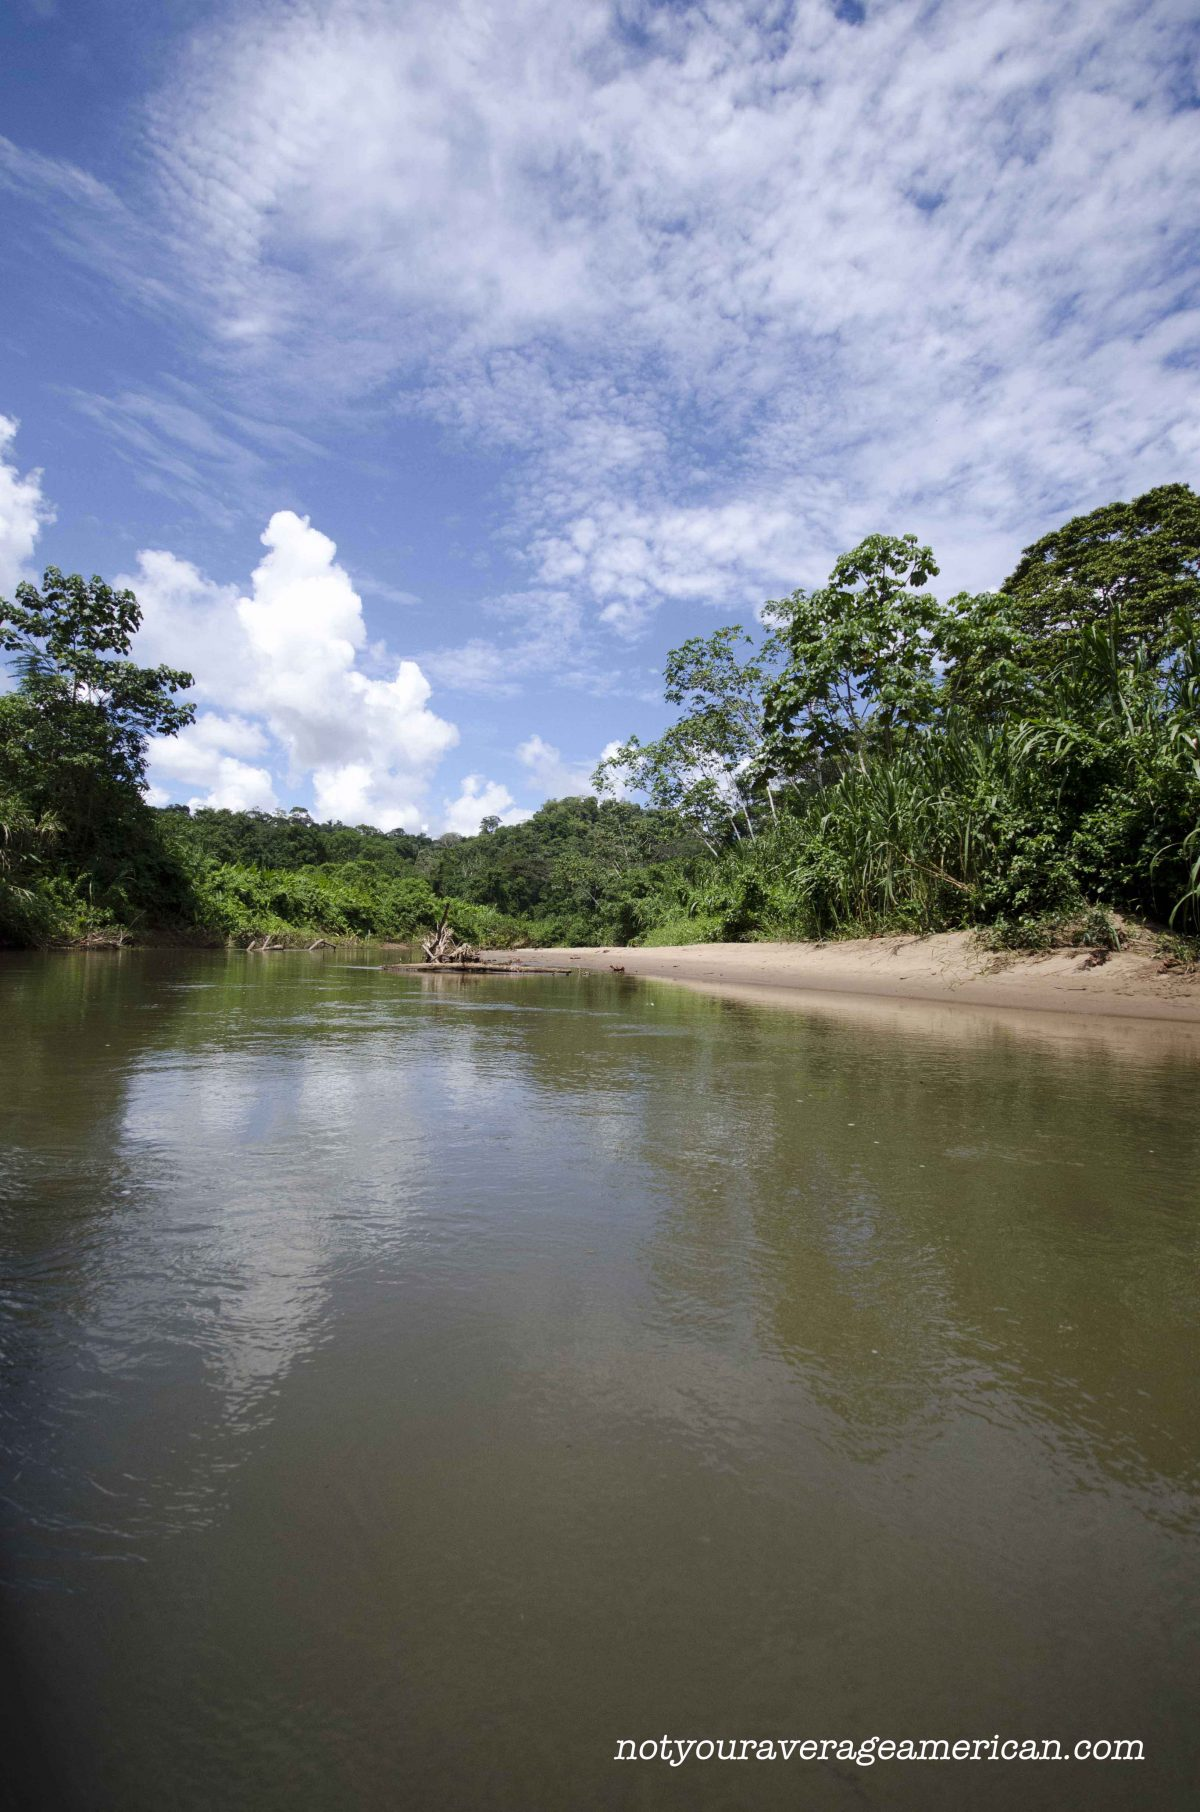 The river that runs through Huaroani Territory is the Rio Shirpuno, Huaorani Lodge